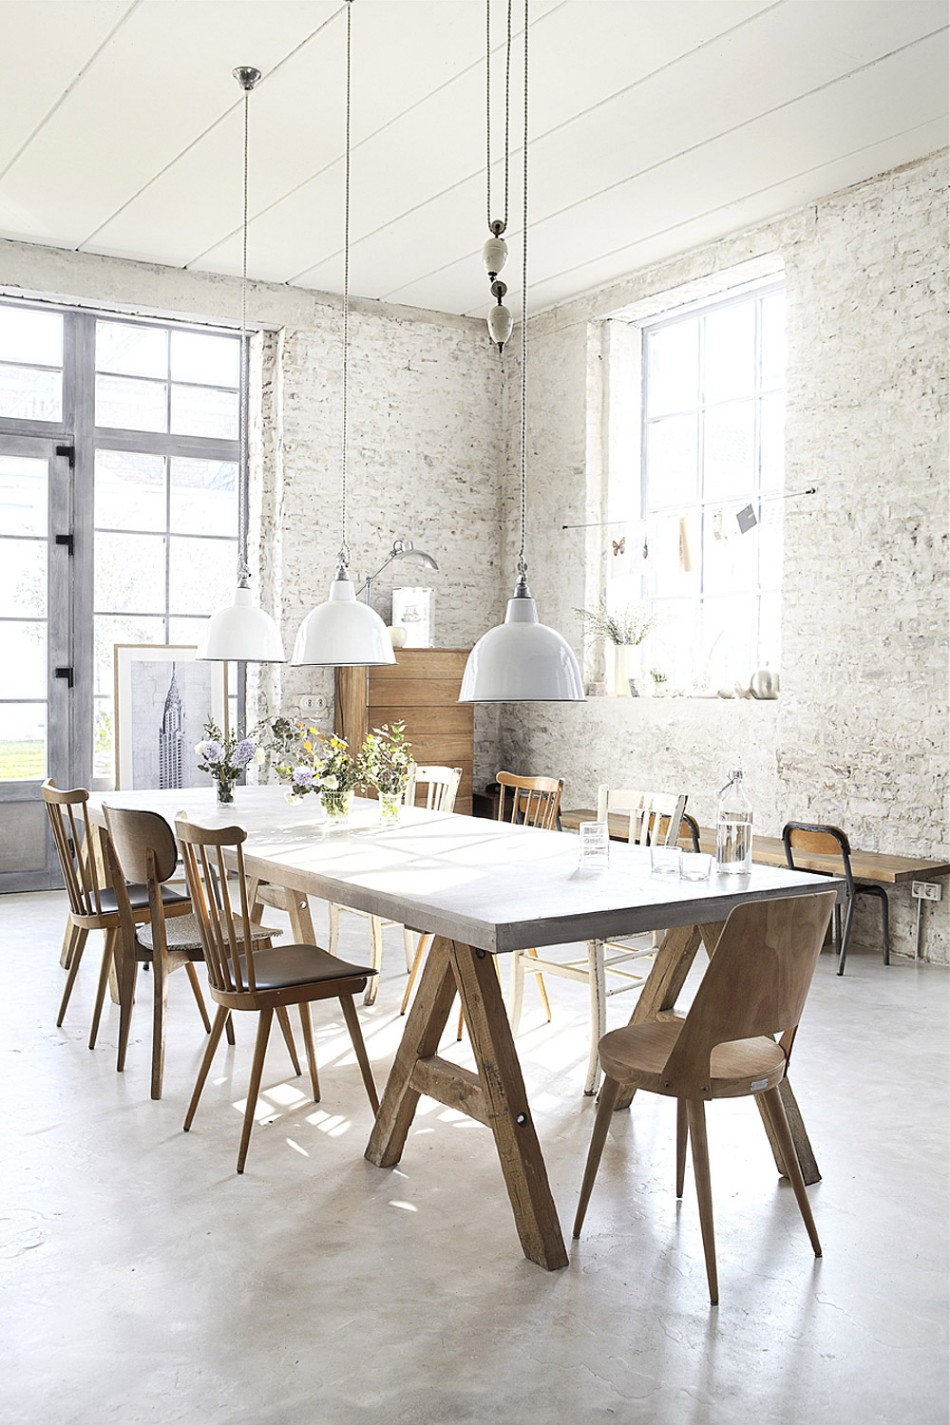 dining table How To Mix and Match Chairs With Your Dining Table CXJSwtFRE472CWNjQ 1